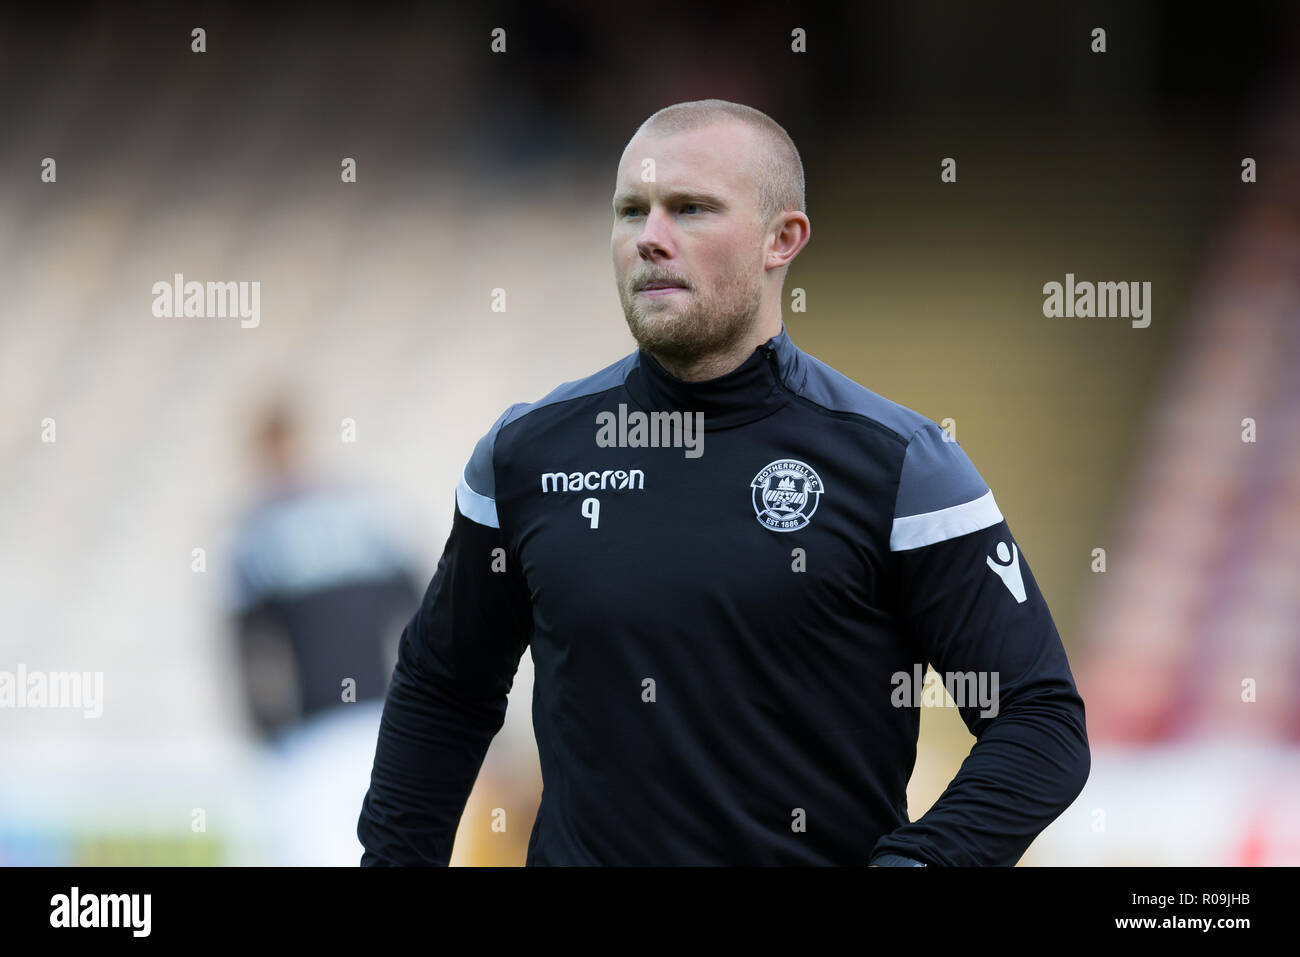 Fir Park, Motherwell, UK. 3rd Nov, 2018. Ladbrokes Premiership football, Motherwell versus Dundee; Curtis Main of Motherwell during the warm up Credit: Action Plus Sports/Alamy Live News Stock Photo